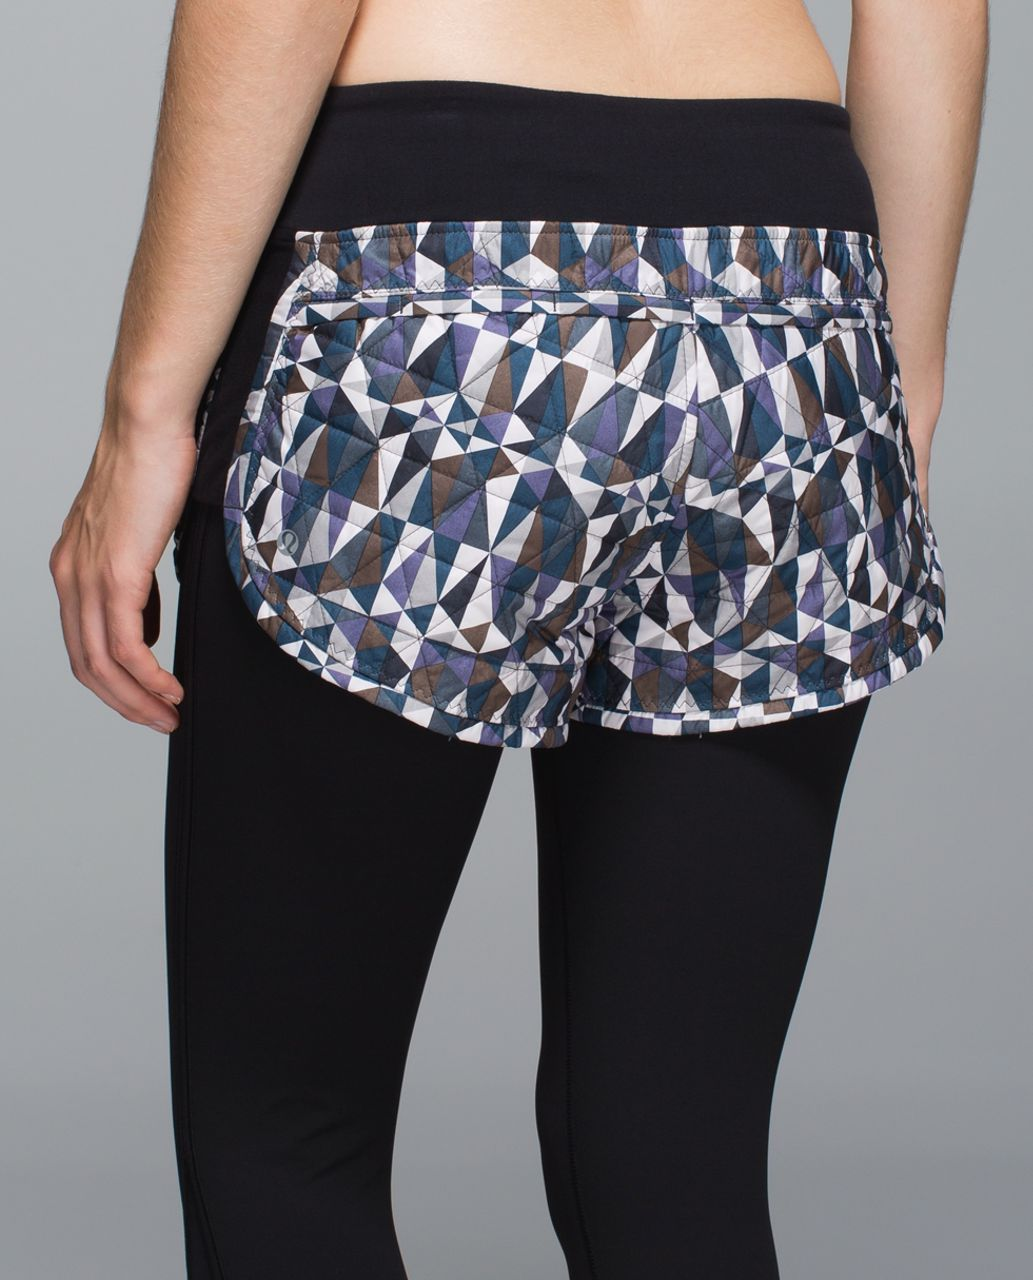 Lululemon Hot Cheeks Short - Stained Glass Love Neutral Blush Black